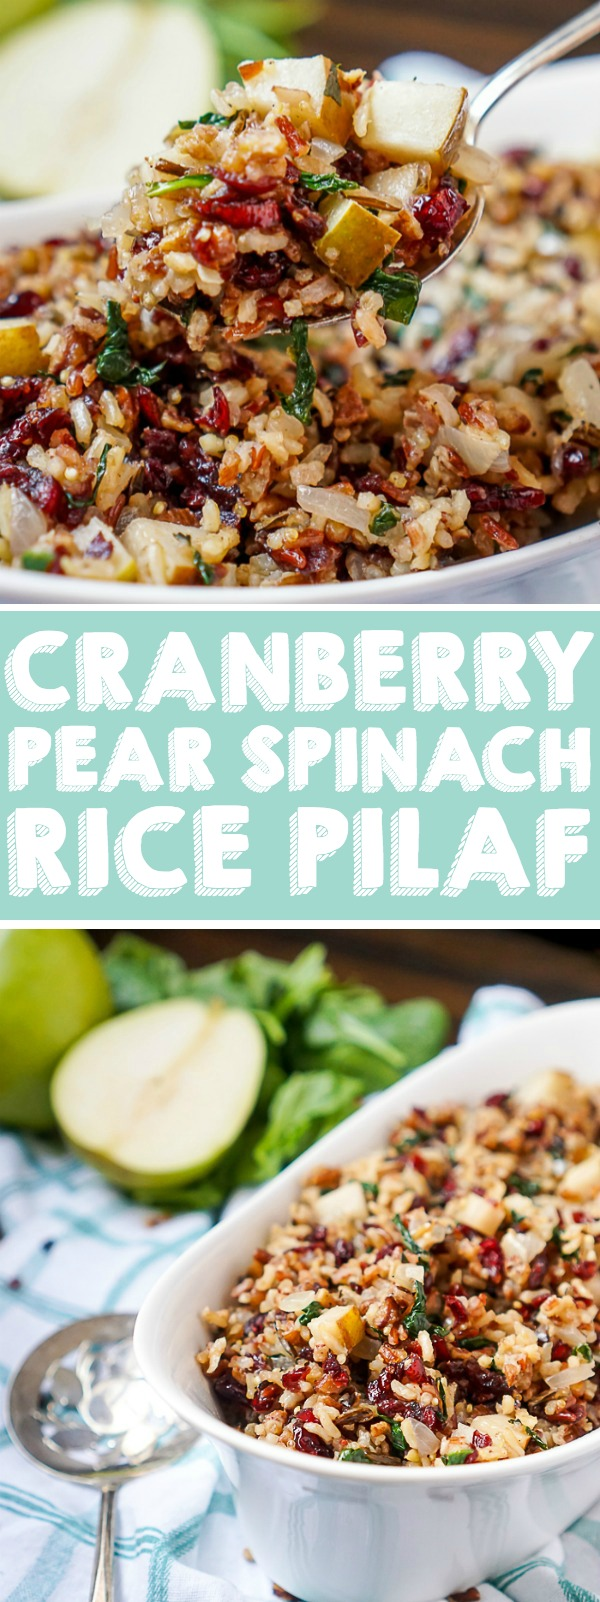 This Cranberry Pear Spinach Rice Pilaf will make a delicious new side dish for your holiday dinner! The spinach rice makes a hearty base for the slightly sweet cranberries and pears. With the little red and green, it really does make the perfect Christmas side dish recipe! | THE LOVE NERDS #Thanksgivingsidedish #Christmassidedish #Thanksgivingrecipe #Christmasrecipe